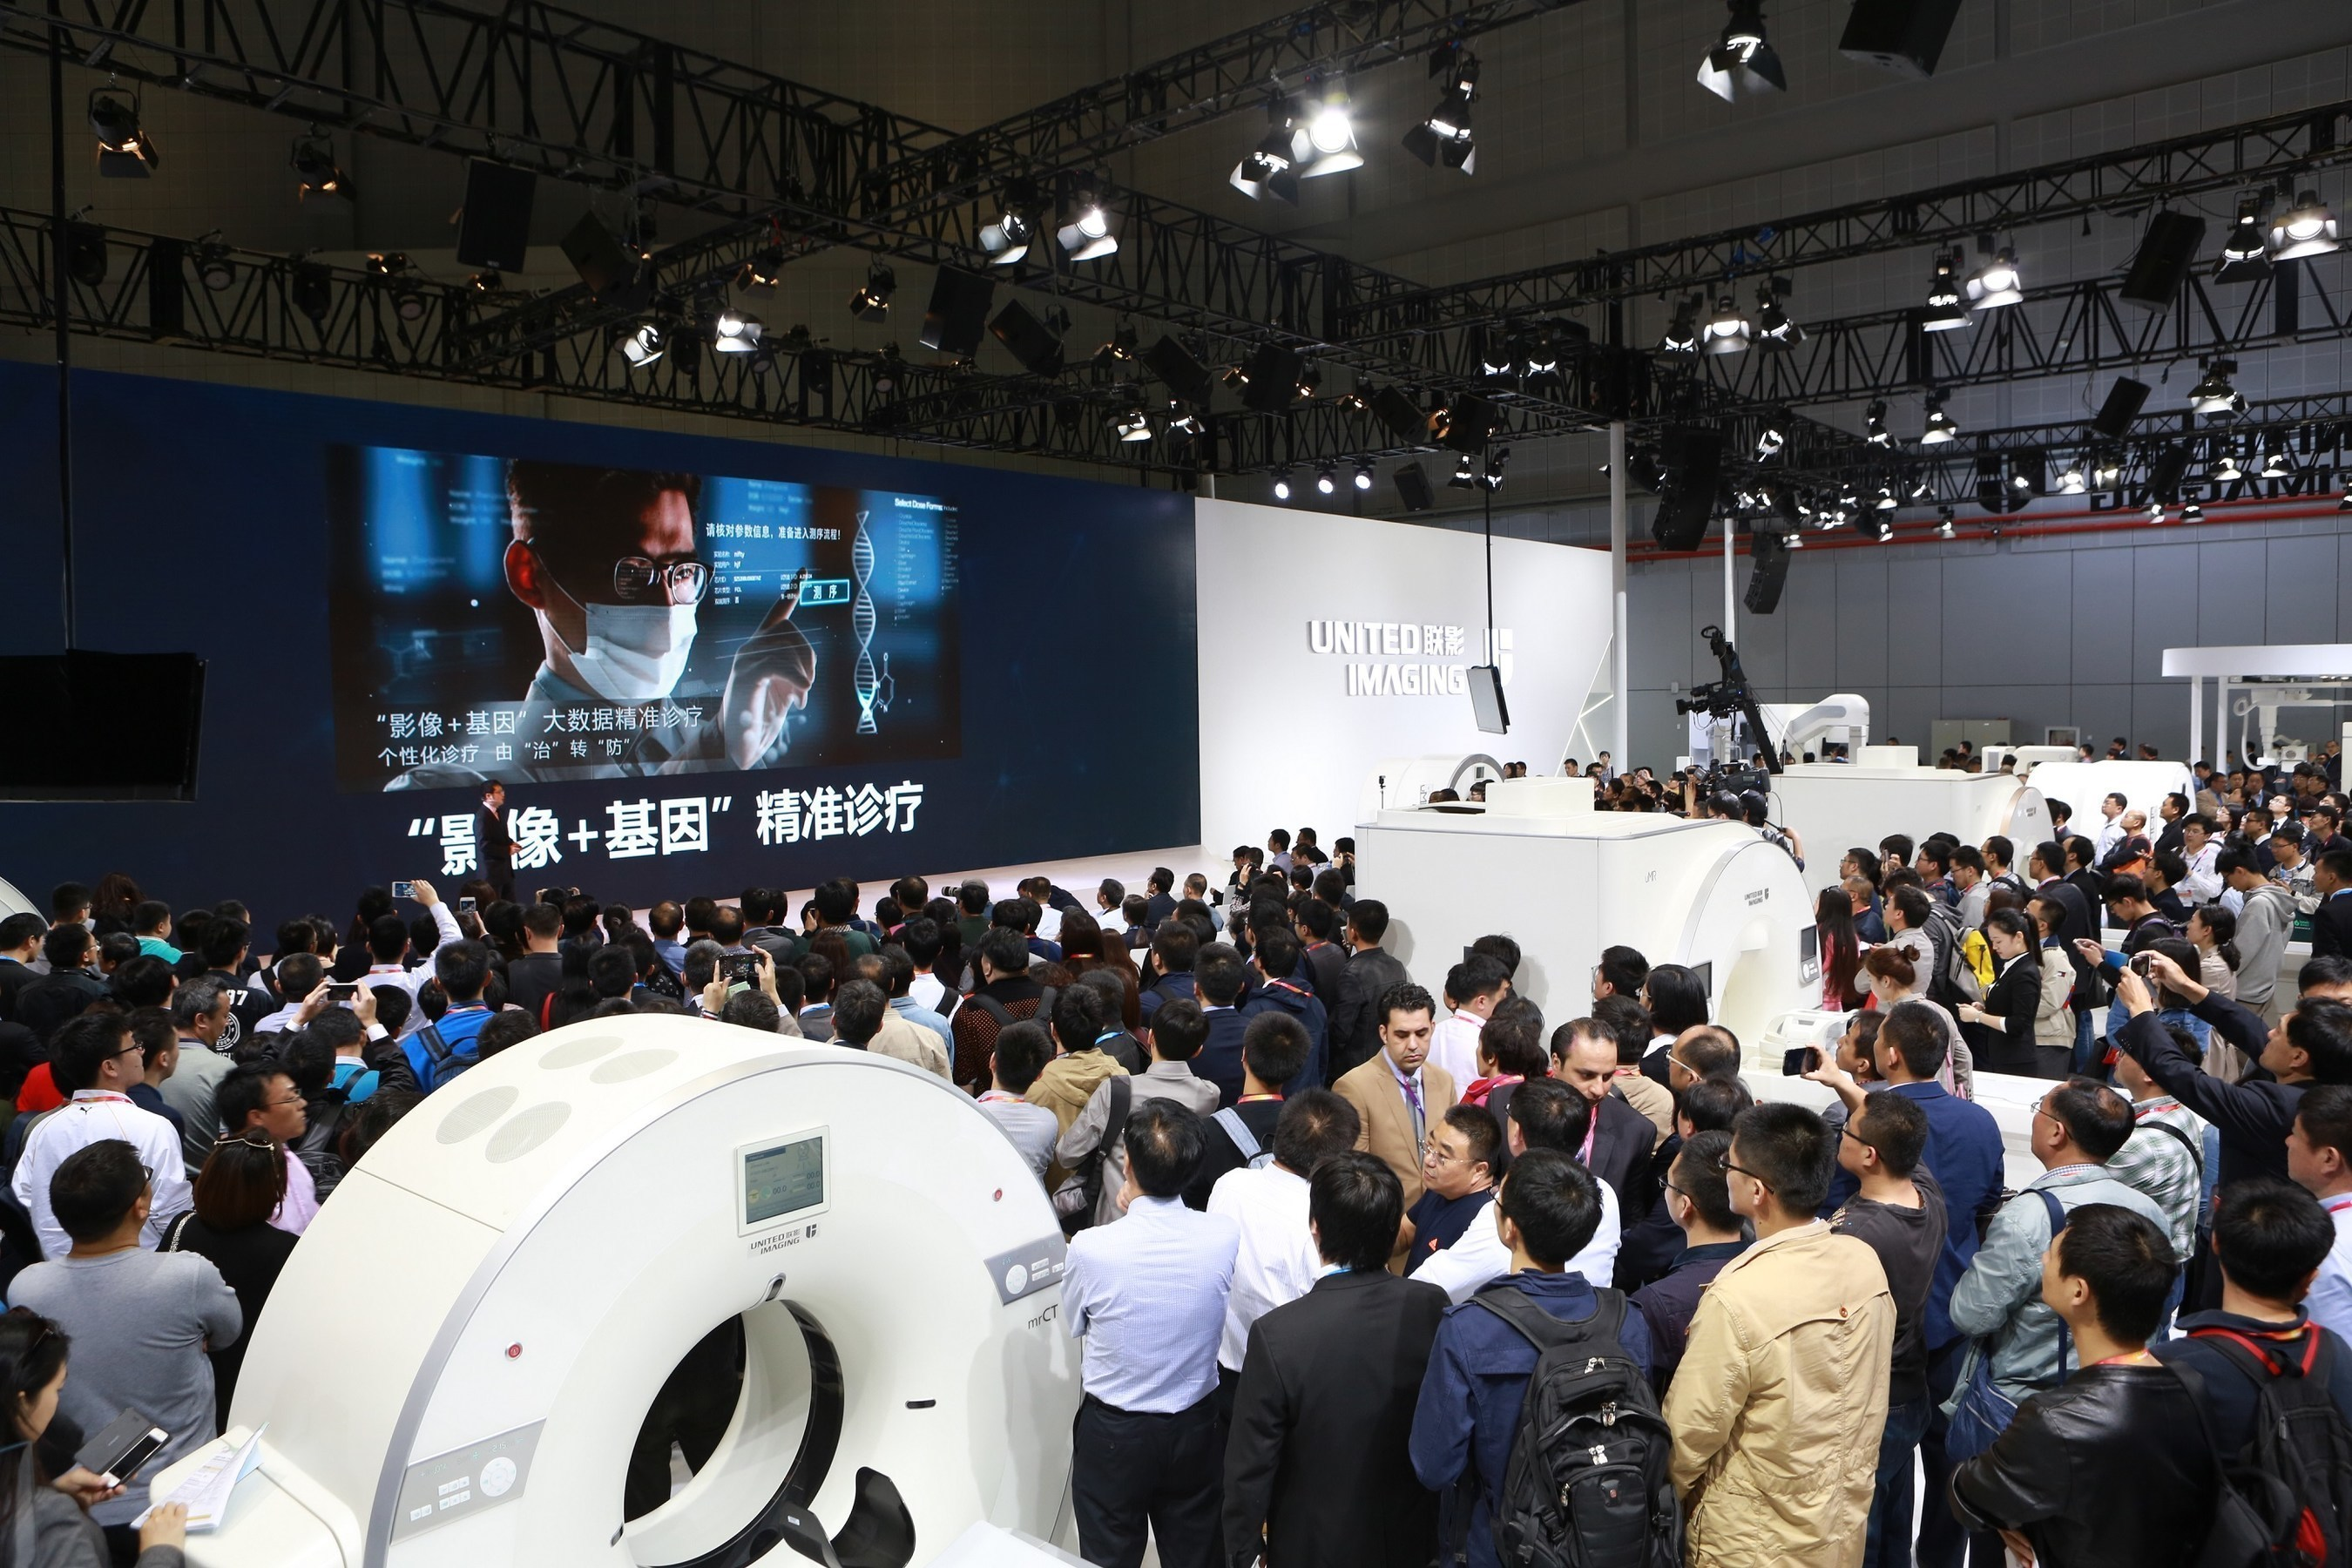 Cap: Reed Sinopharm Hosts World's Largest Healthcare Event - tHIS in Shanghai